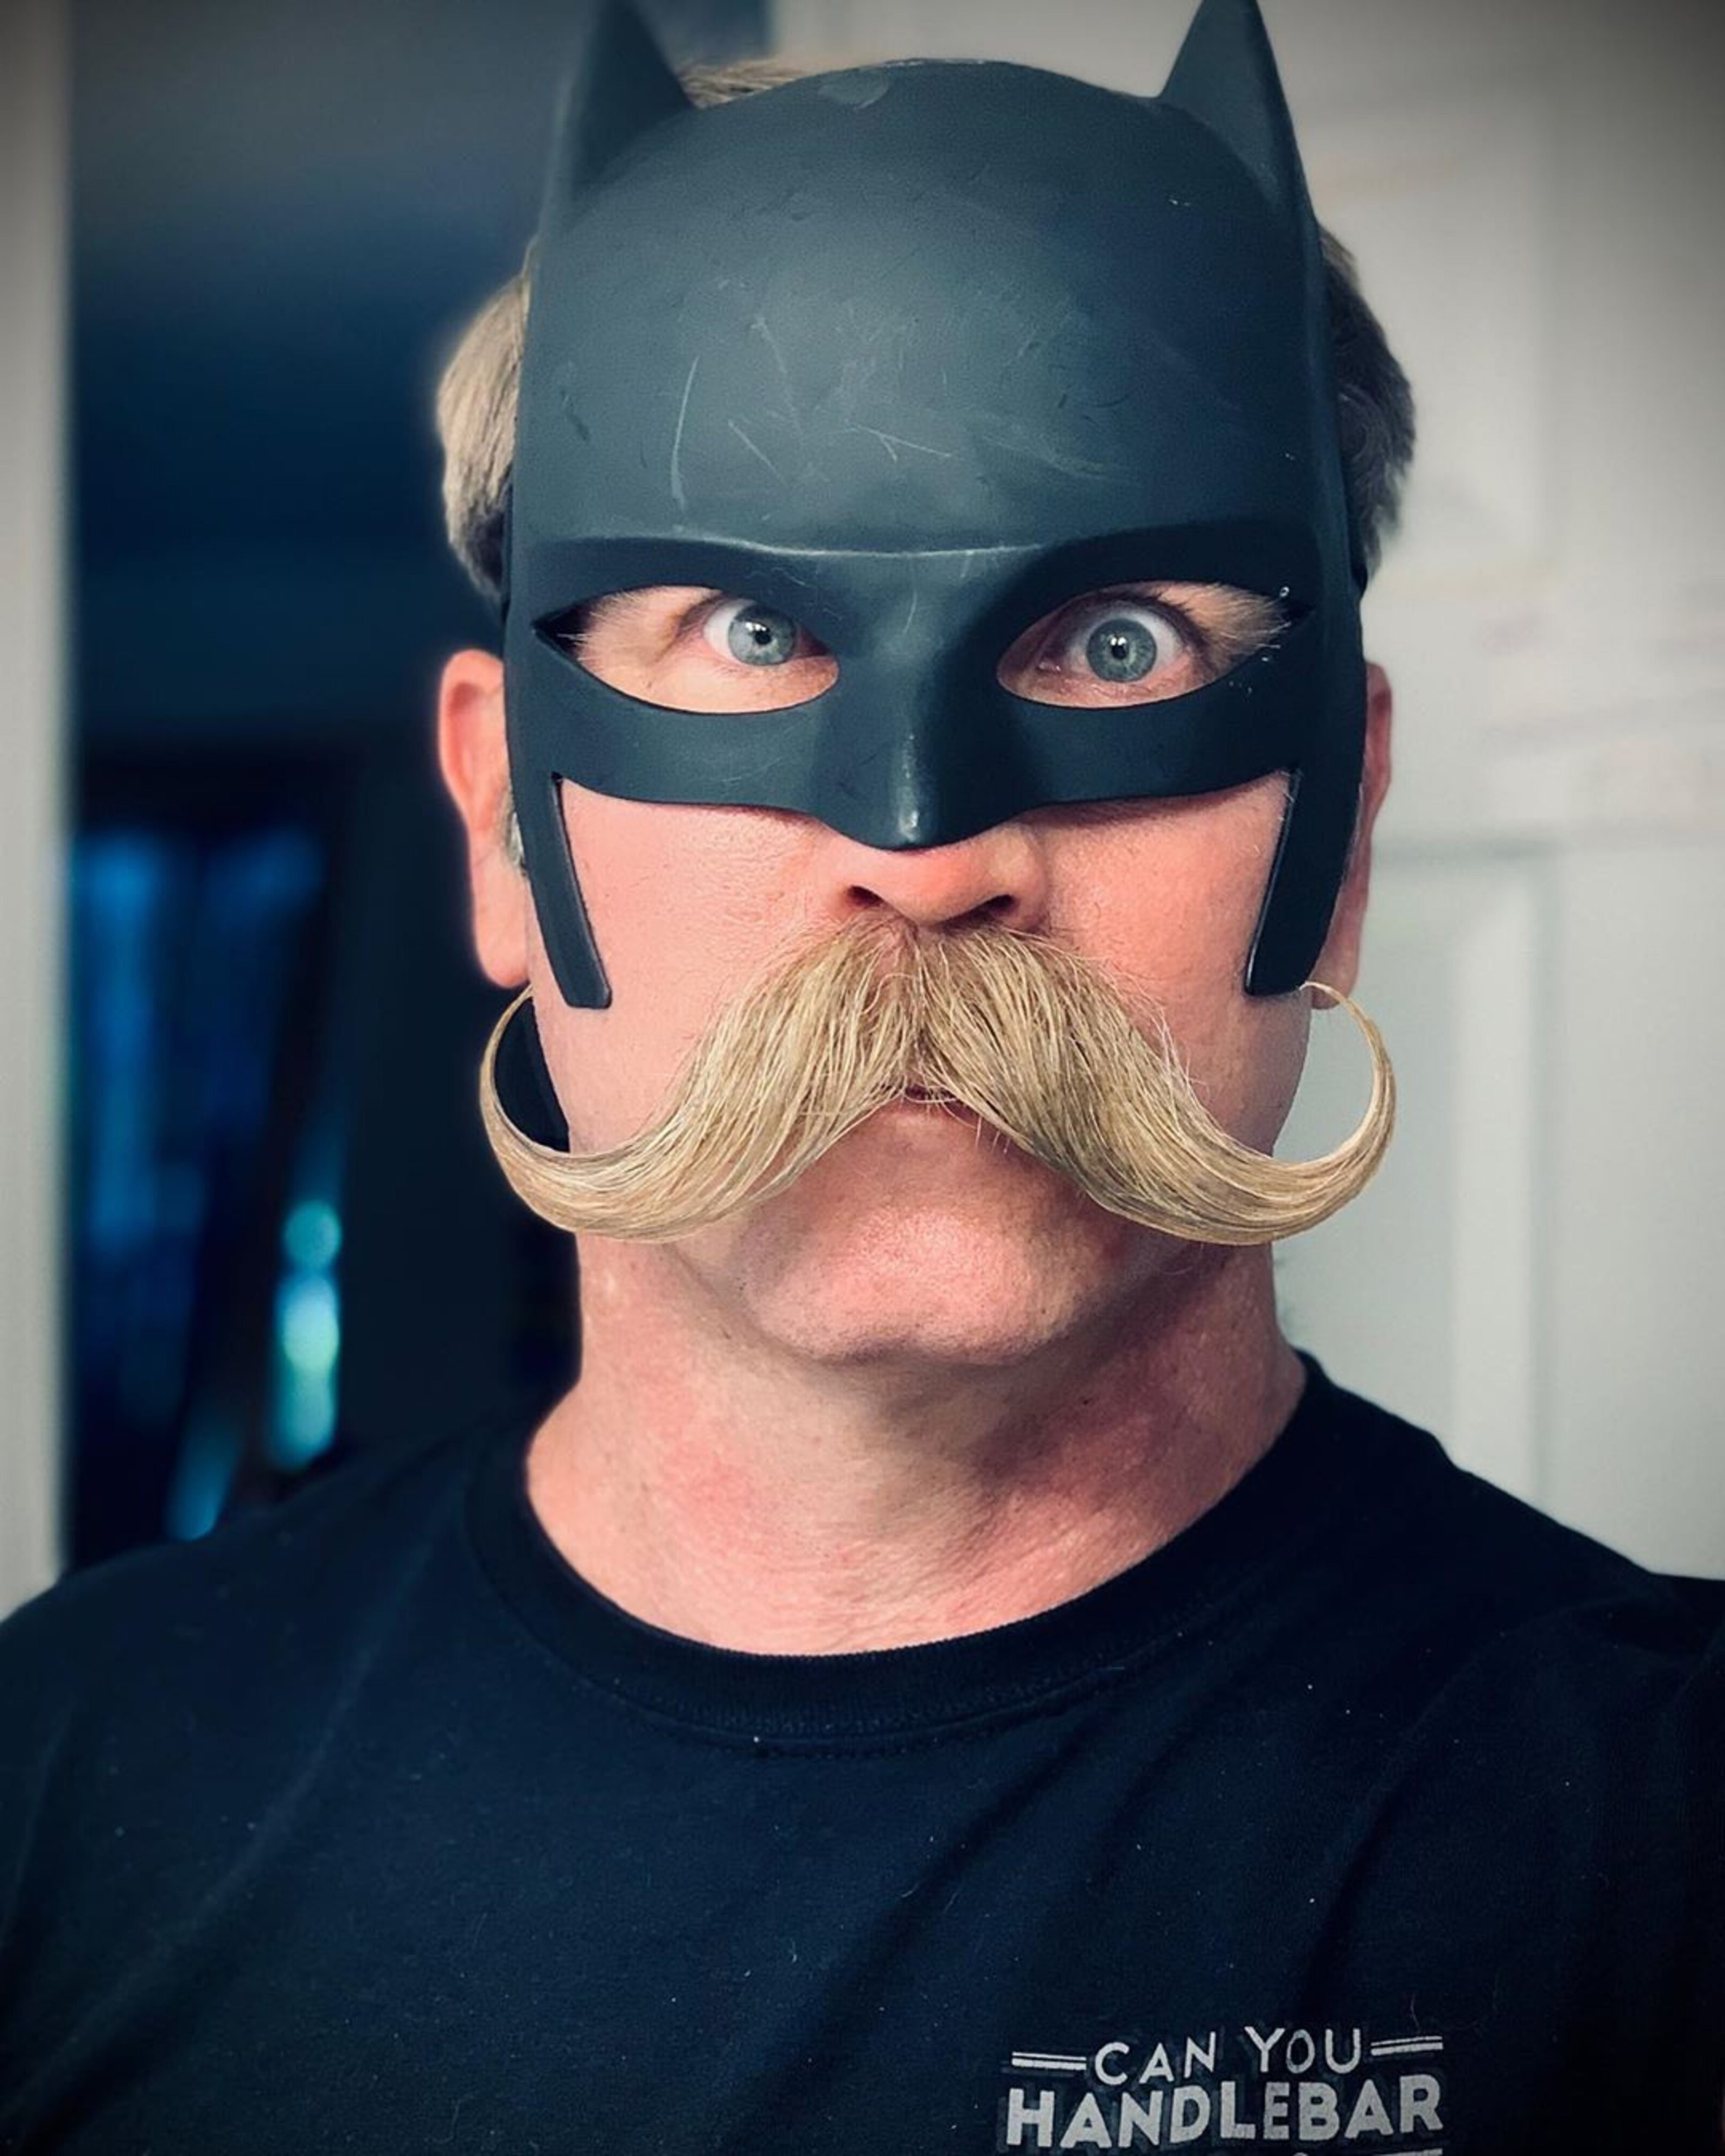 A funny handlebar mustache for males.